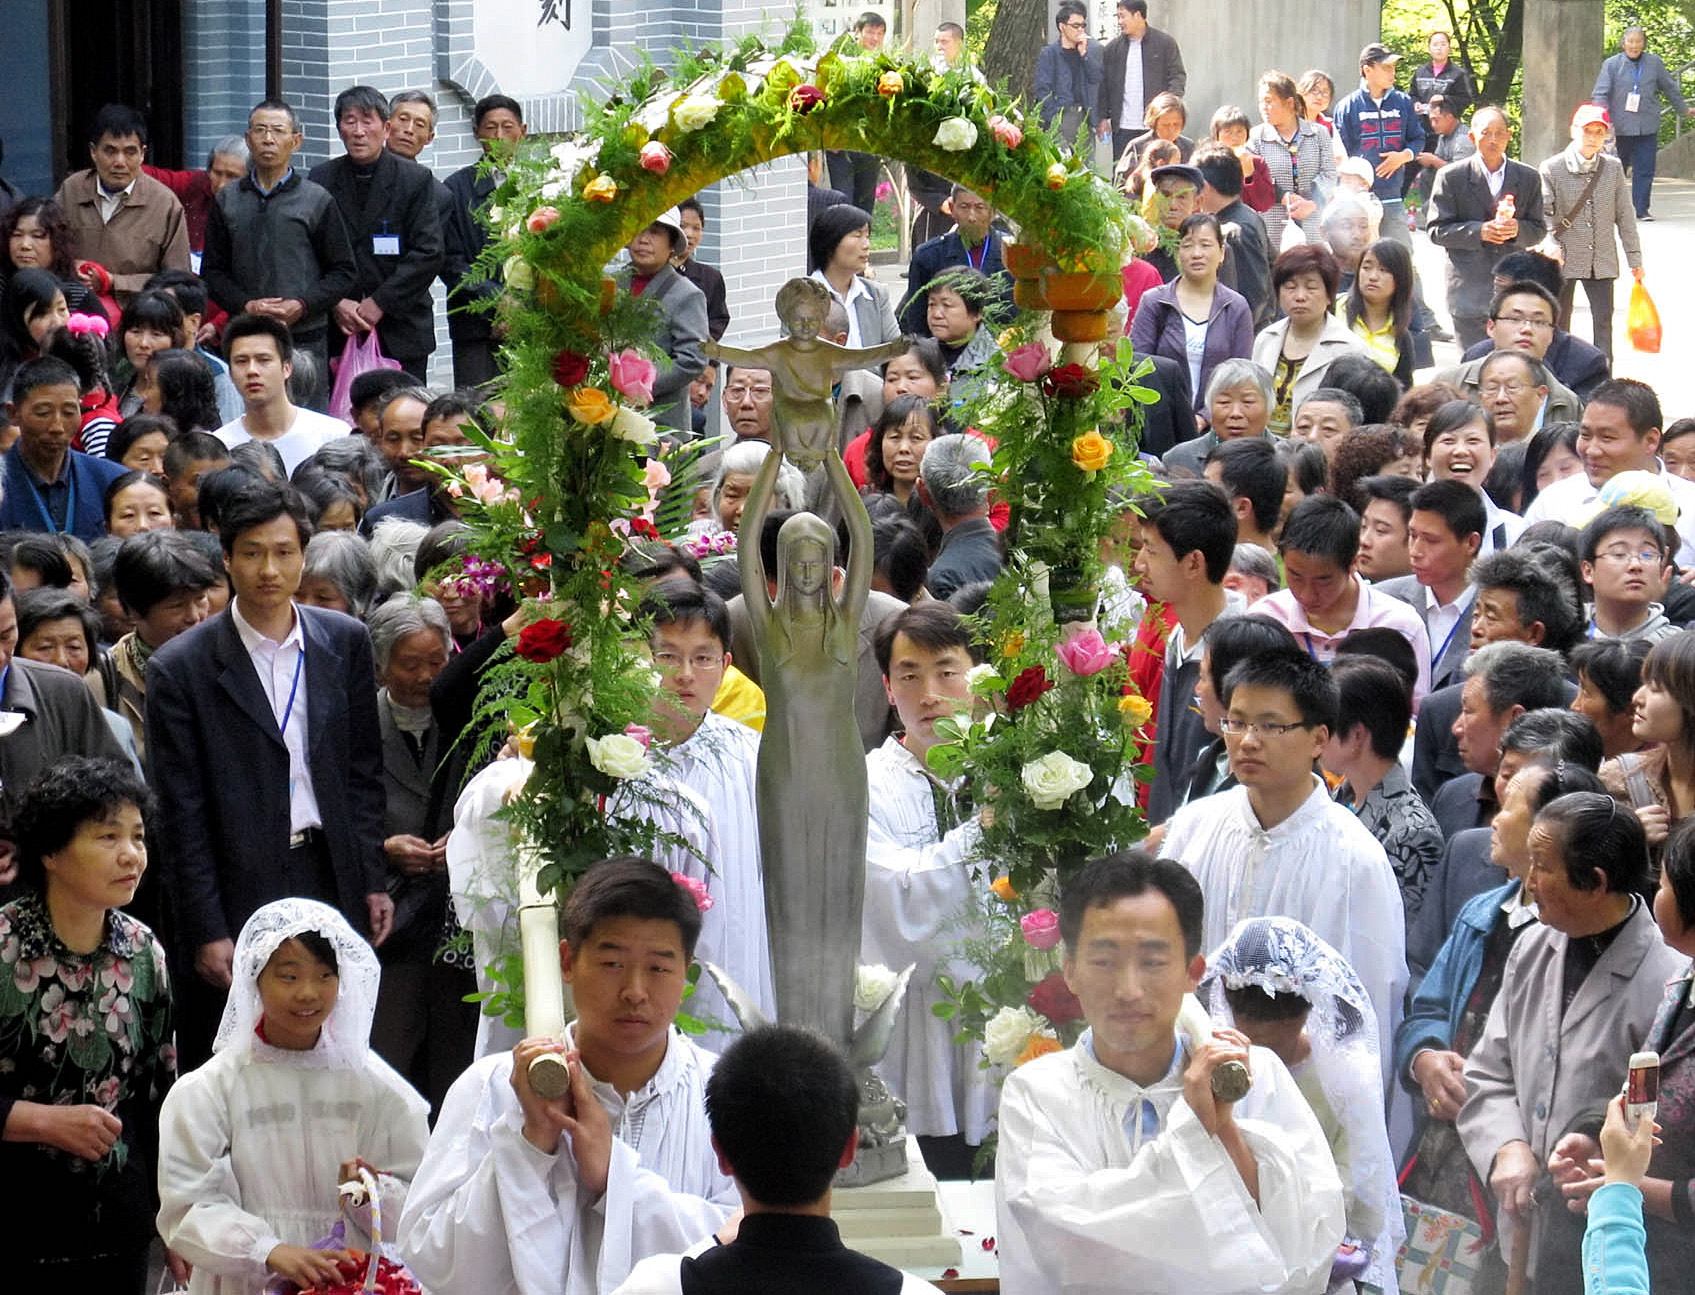 CATHOLICS CARRY STATUE OF MARY AS THEY PROCESS TO SHESHAN MARIAN SHRINE IN CHINA